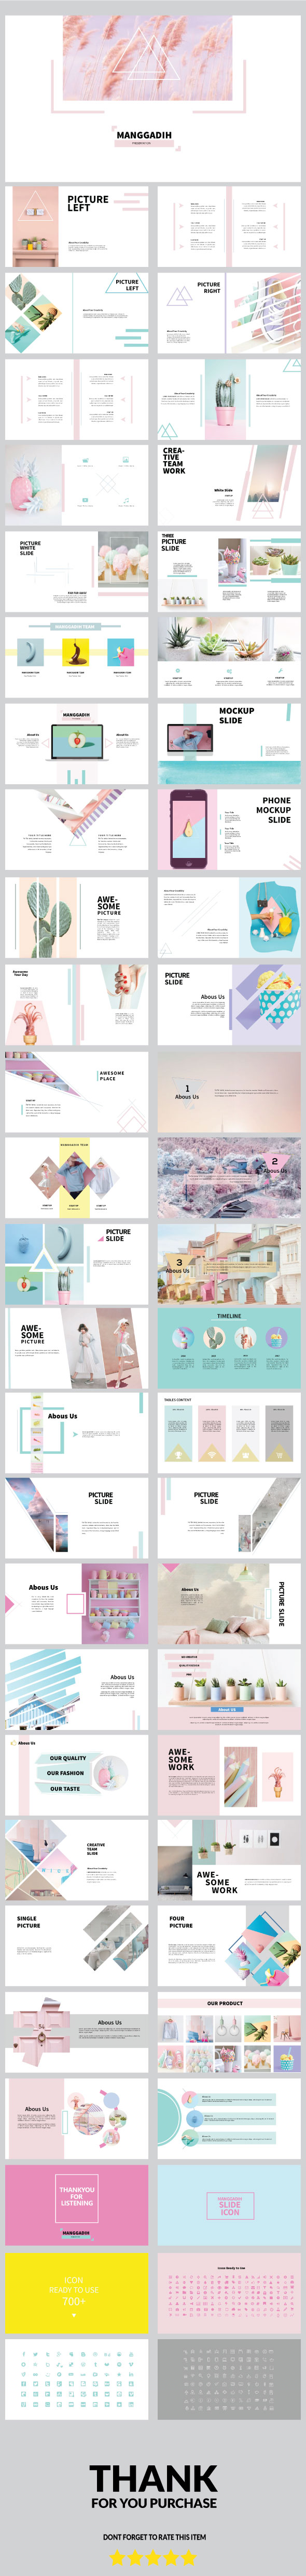 Manggadih multipurpose powerpoint template by jyxd graphicriver manggadih multipurpose powerpoint template business powerpoint templates toneelgroepblik Image collections